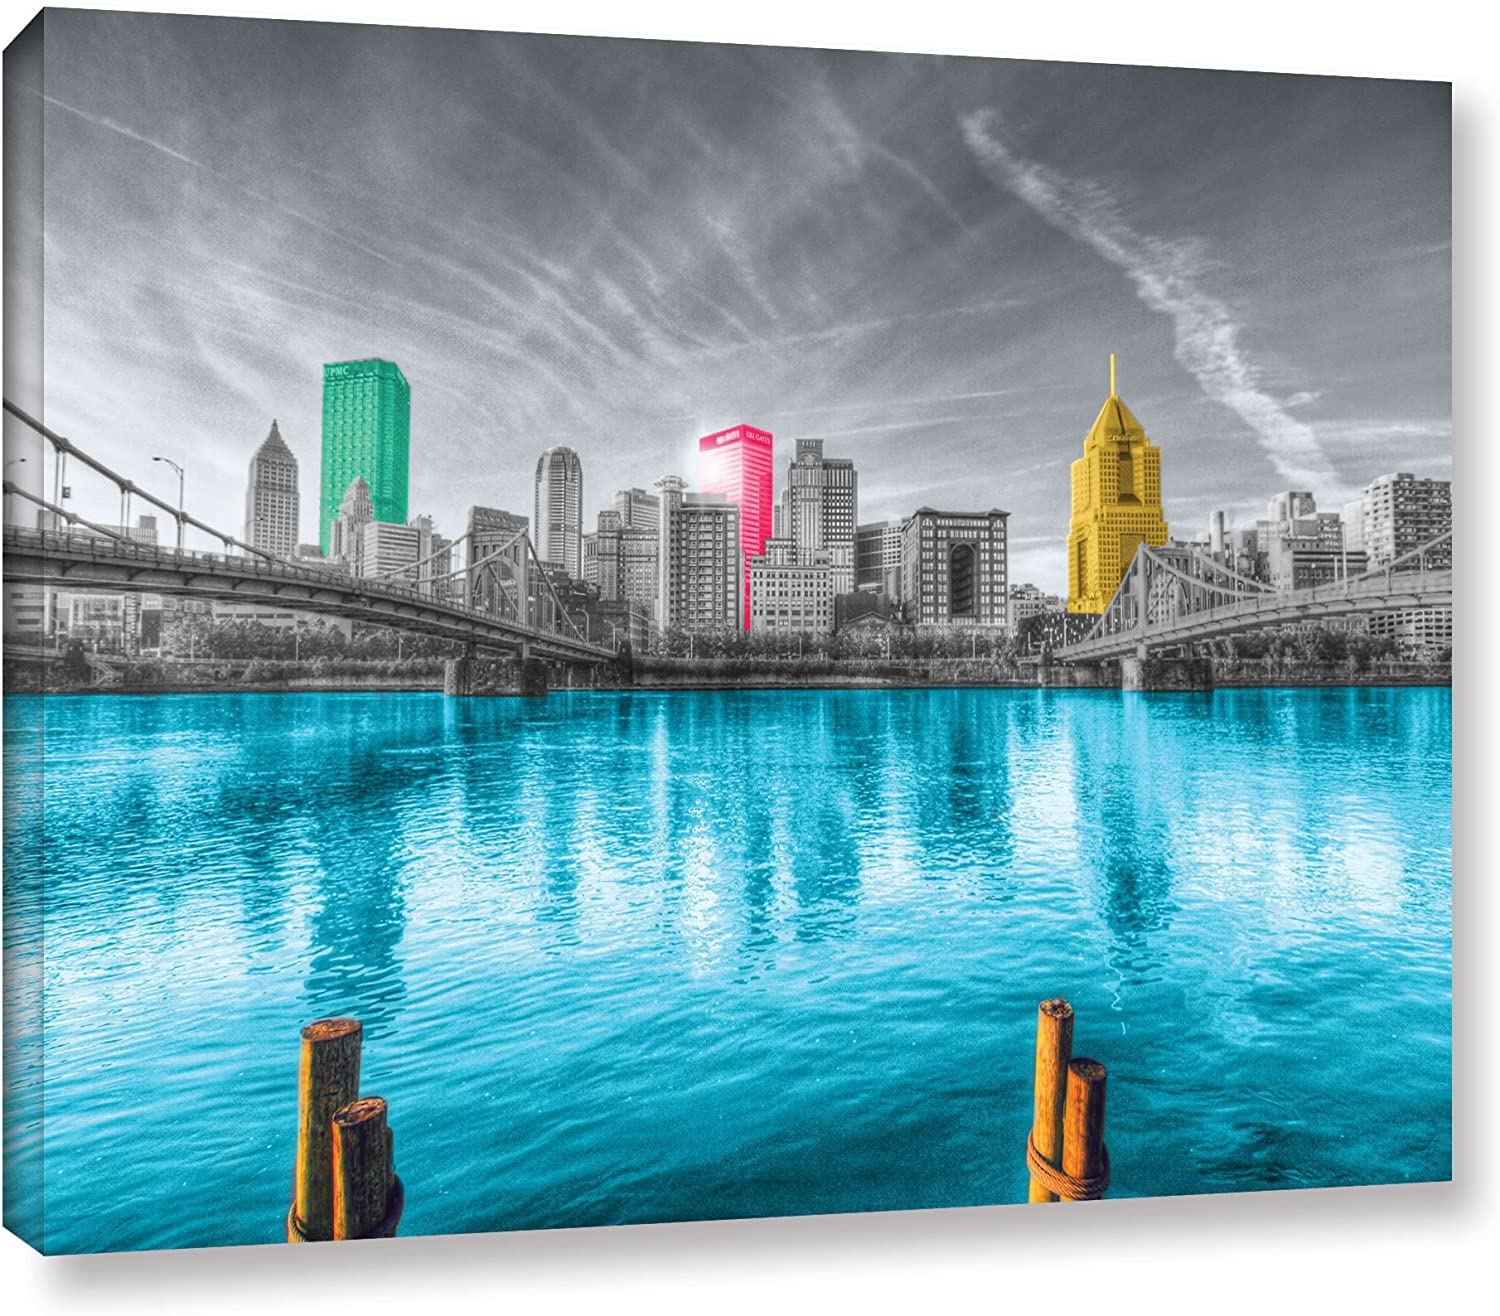 ArtWall Revolver Ocelot 'Pittsburgh' Gallery-Wrapped Canvas Artwork, 16 by 24-Inch